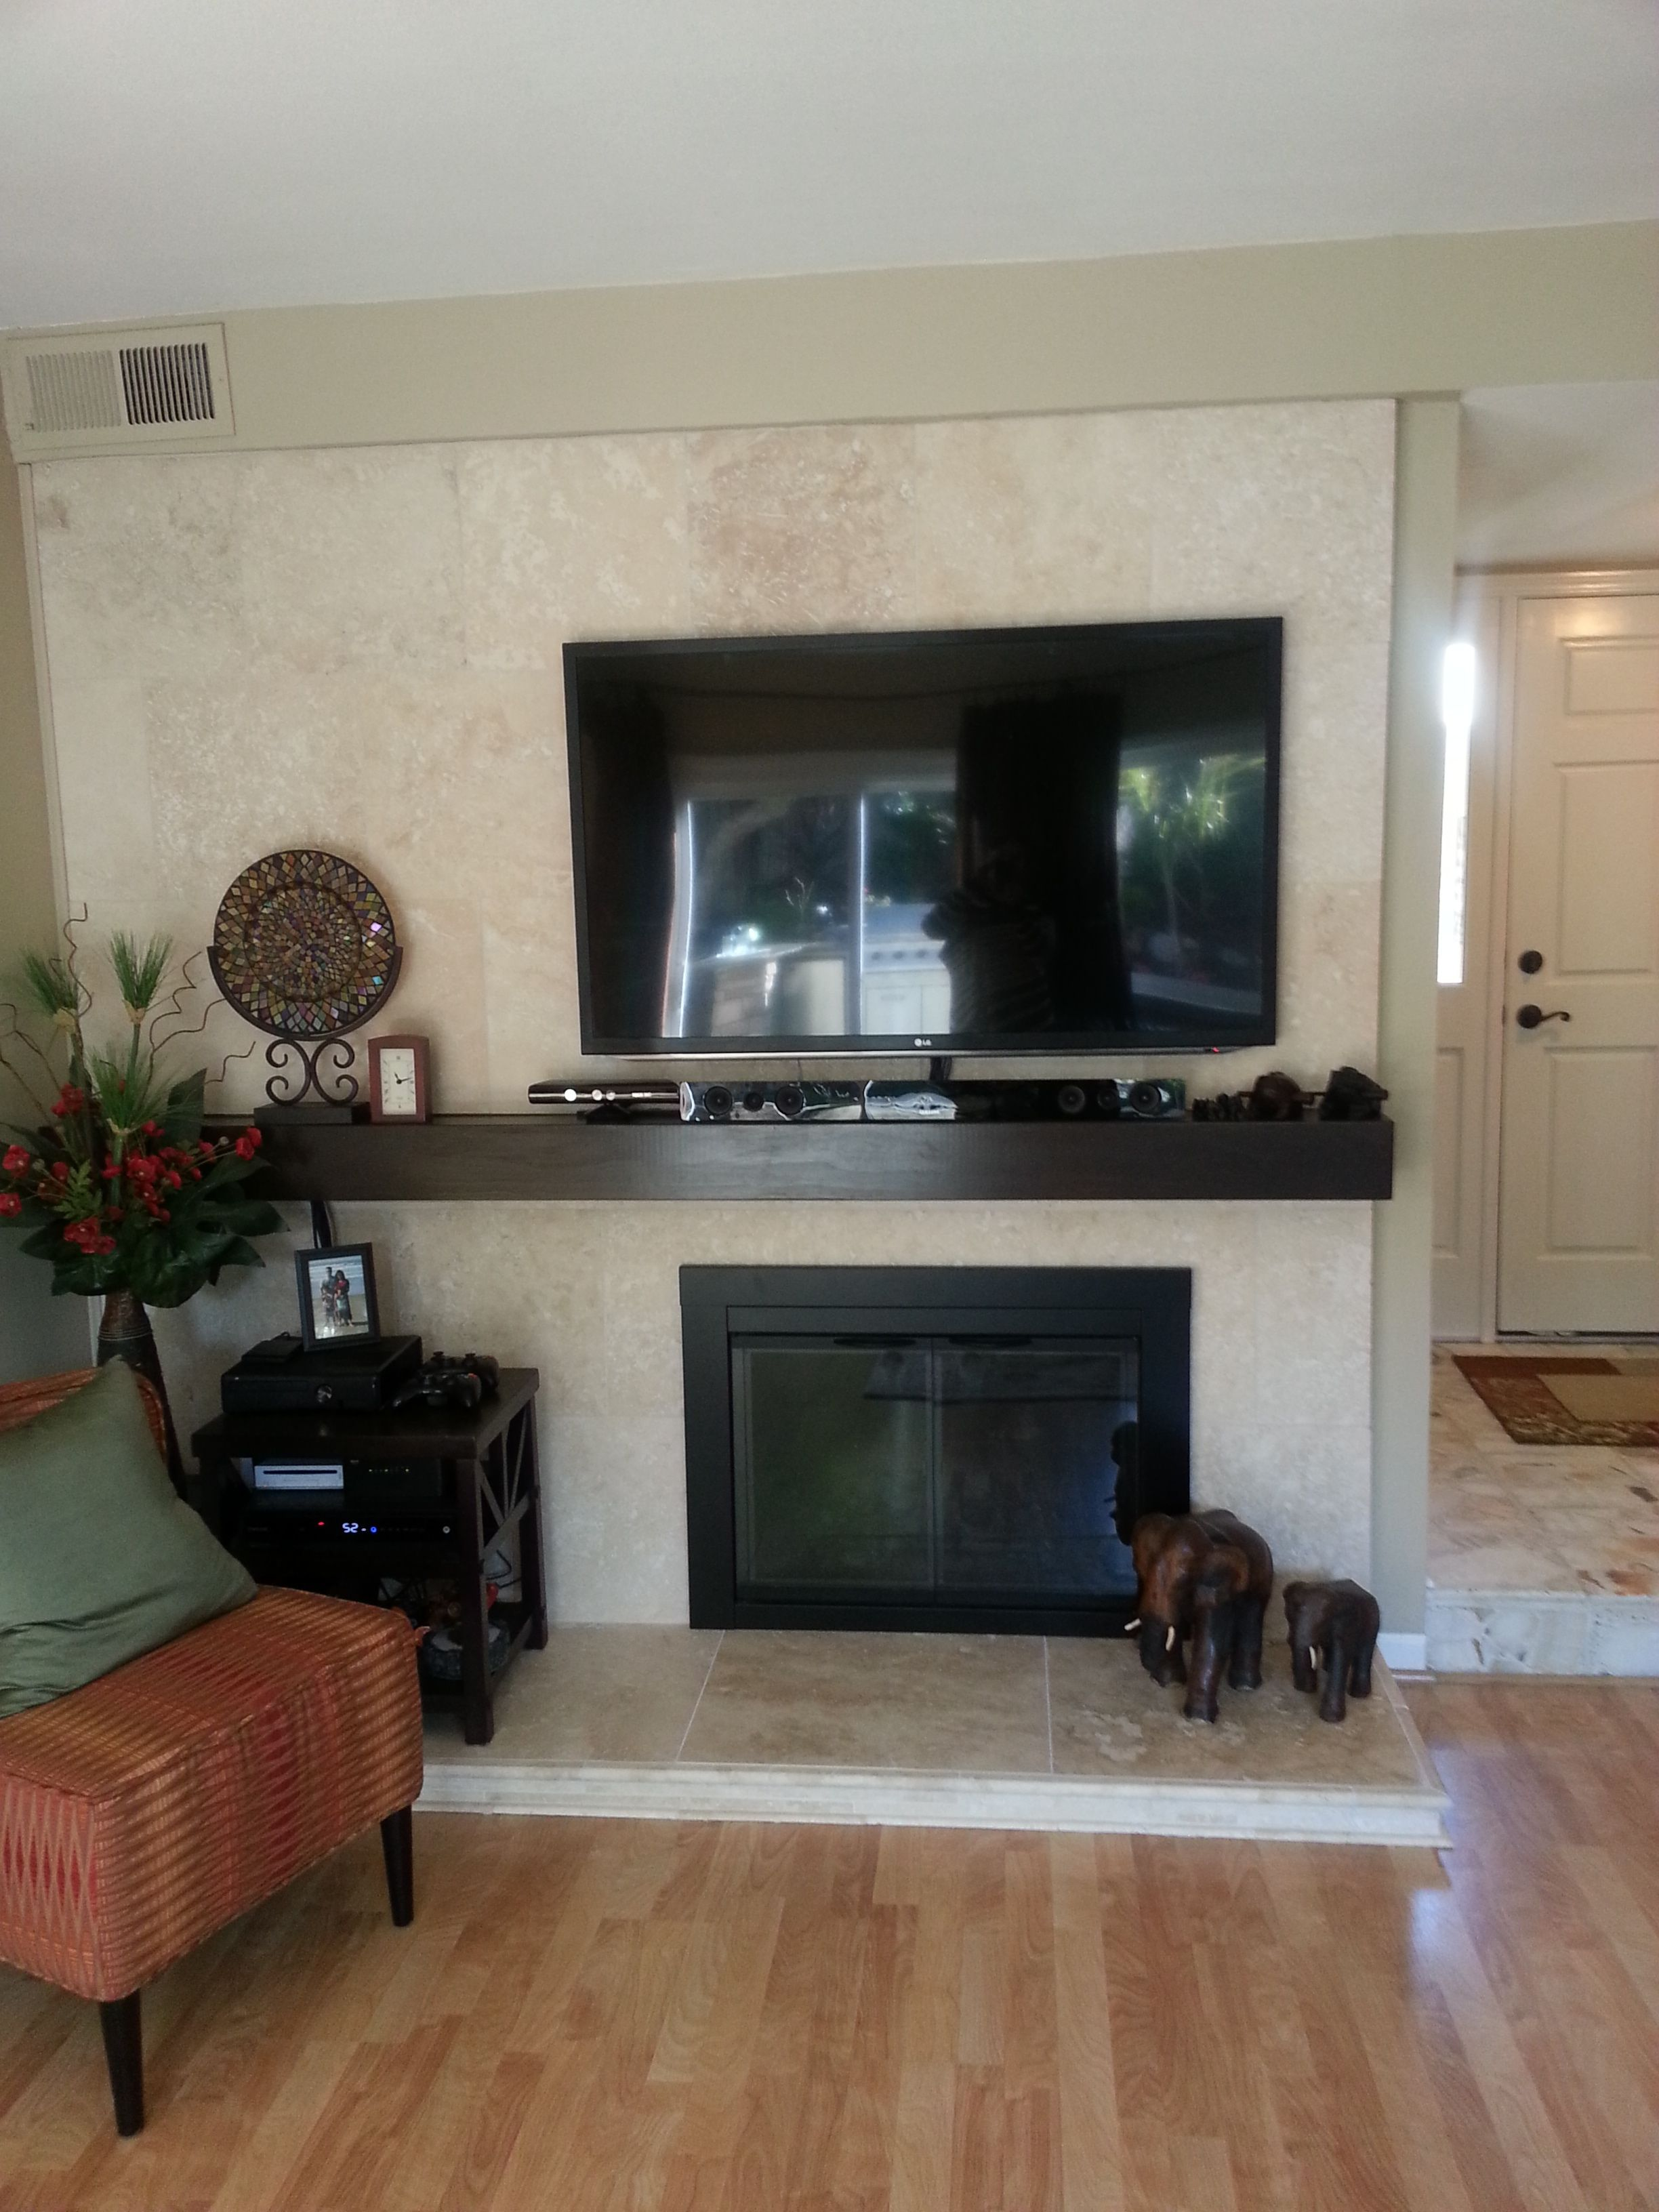 Limestone Or Travertine Tile As Fireplace Surround Used